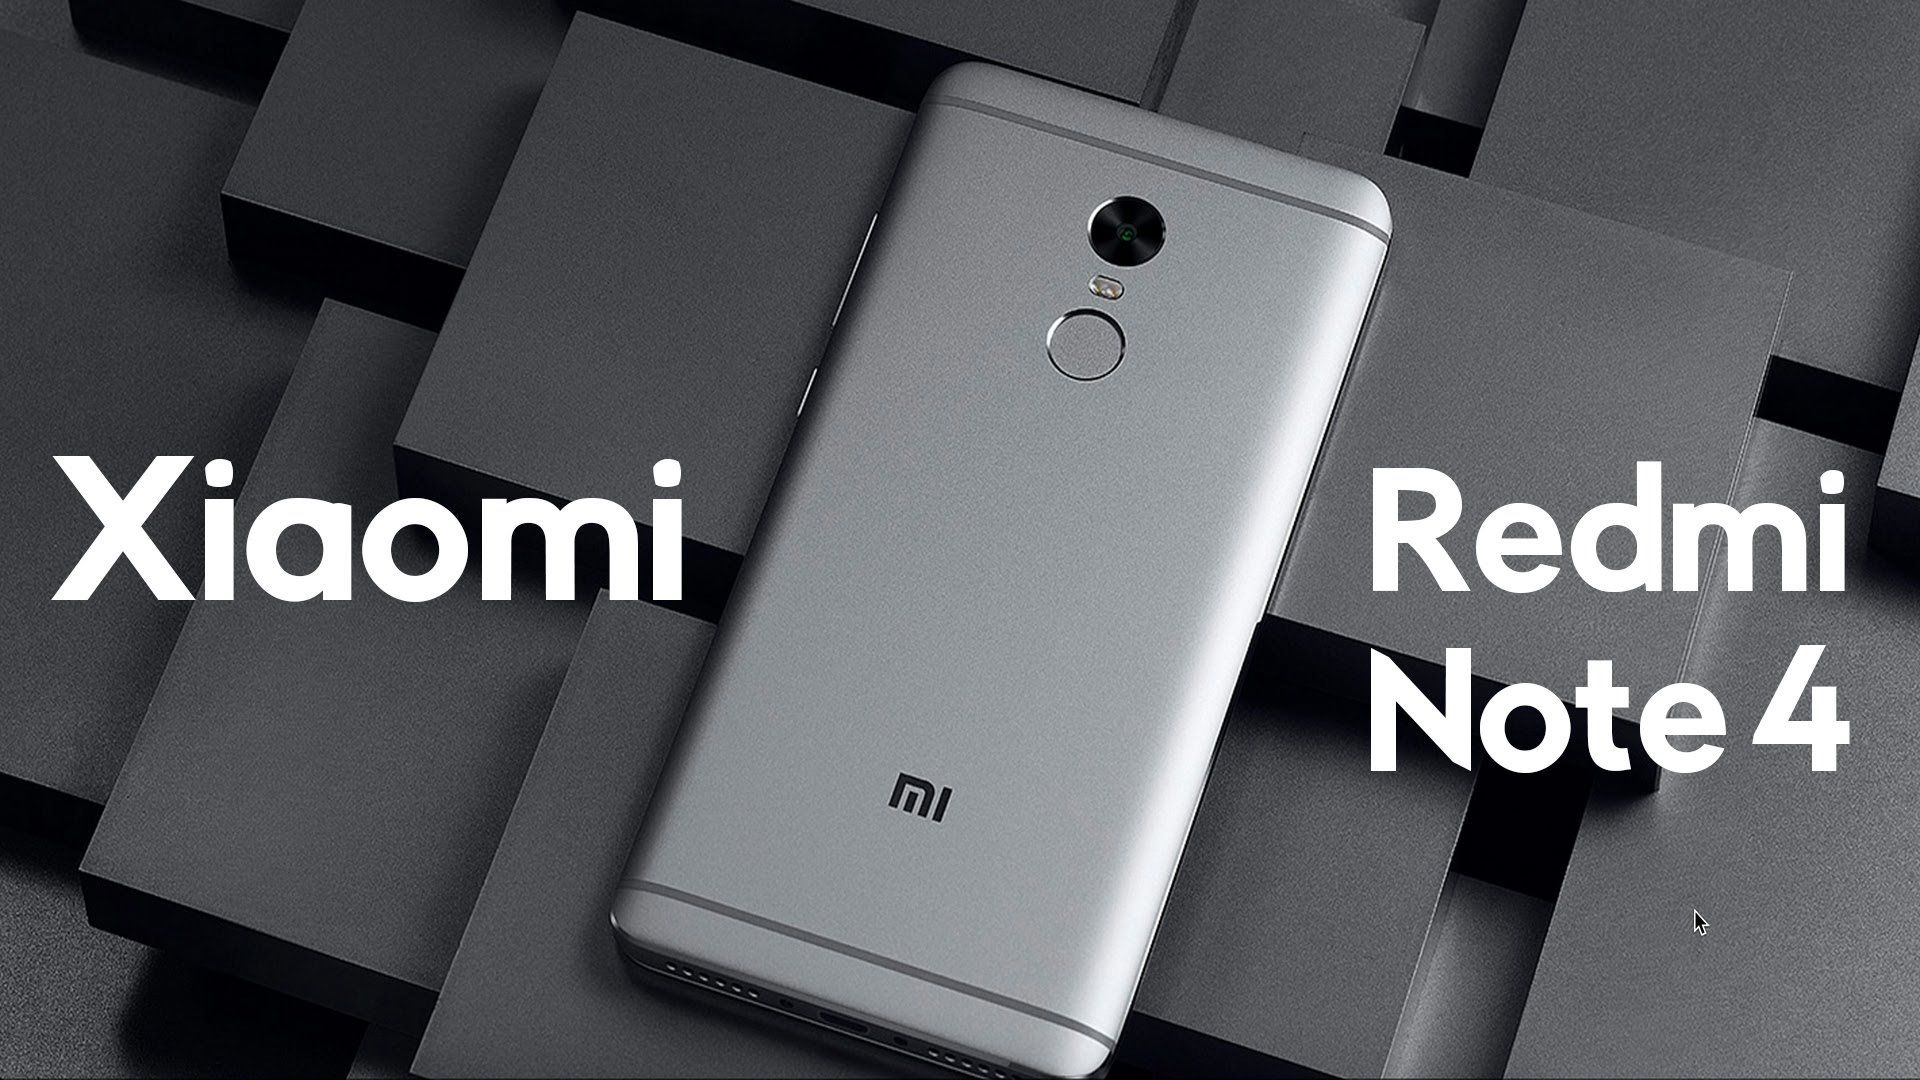 How to Update Xiaomi Redmi Note 4 with Android 7 1 Nougat